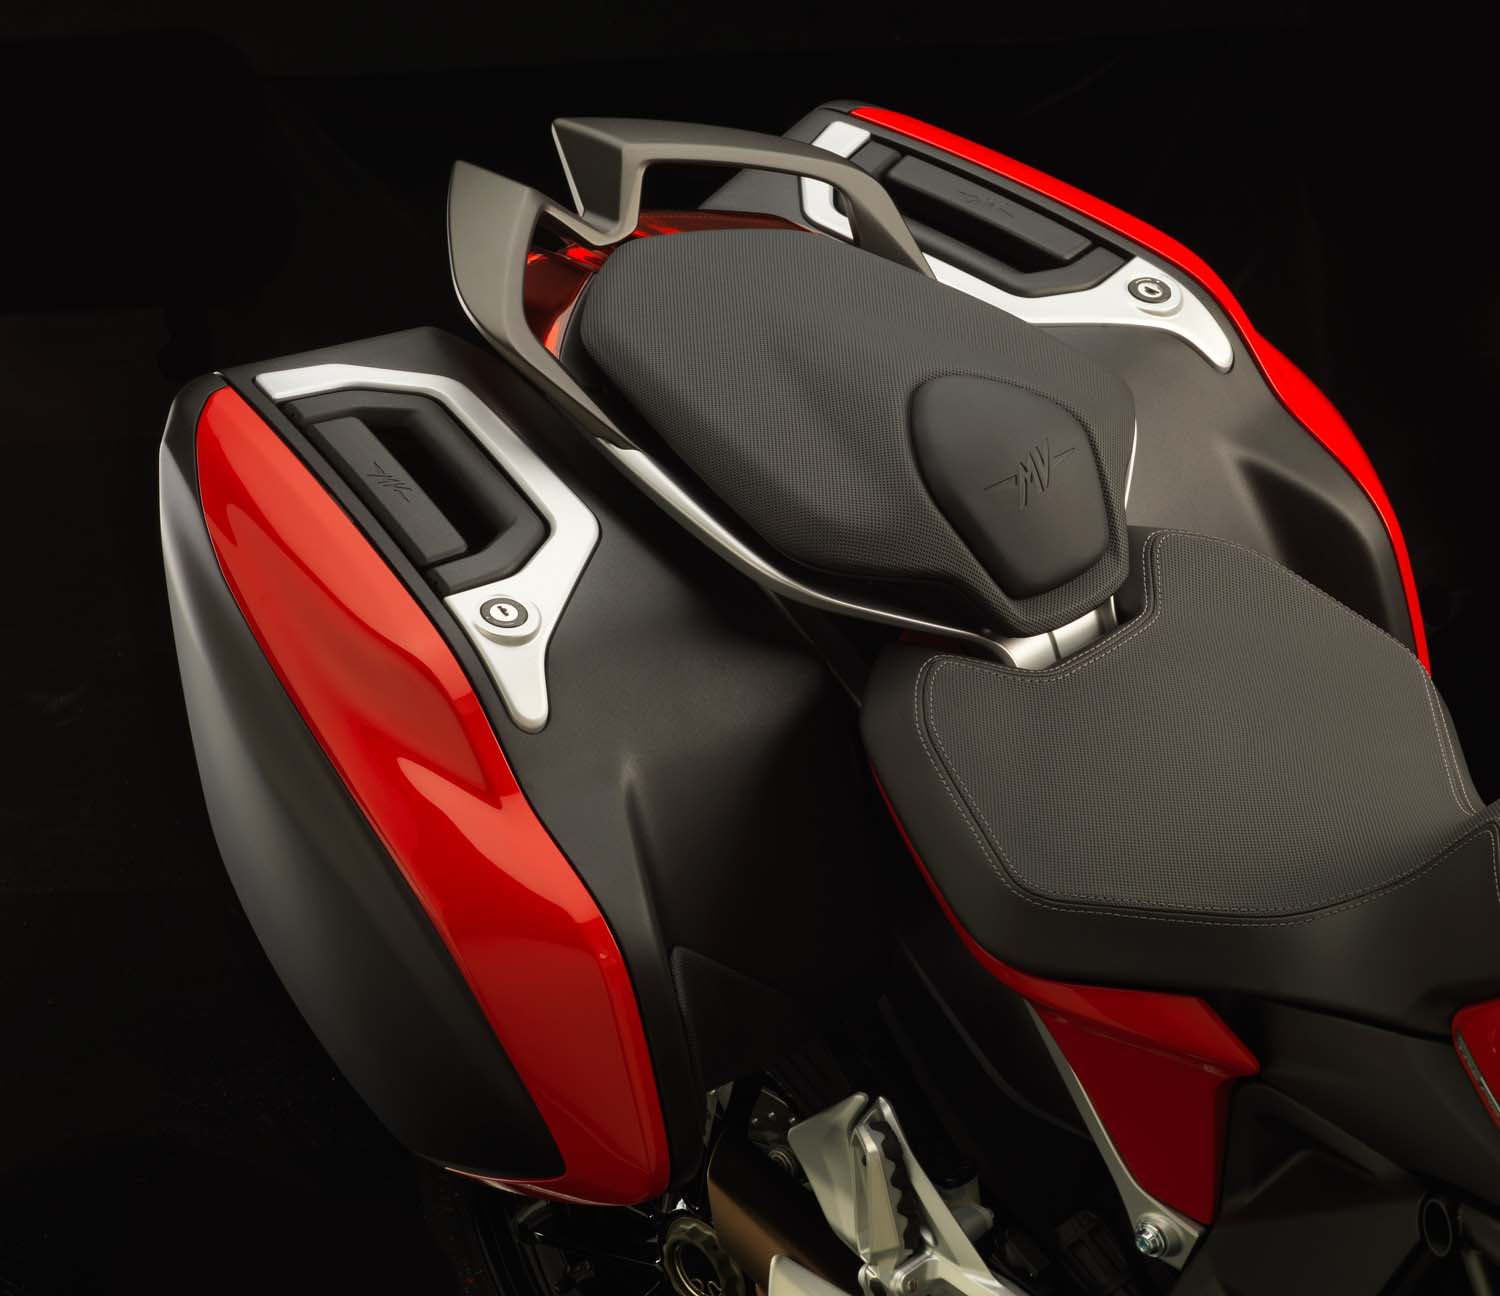 http://www.asphaltandrubber.com/wp-content/gallery/mv-agusta-turismo-veloce-800/2104-mv-agusta-turismo-veloce-lusso-800-06.jpg